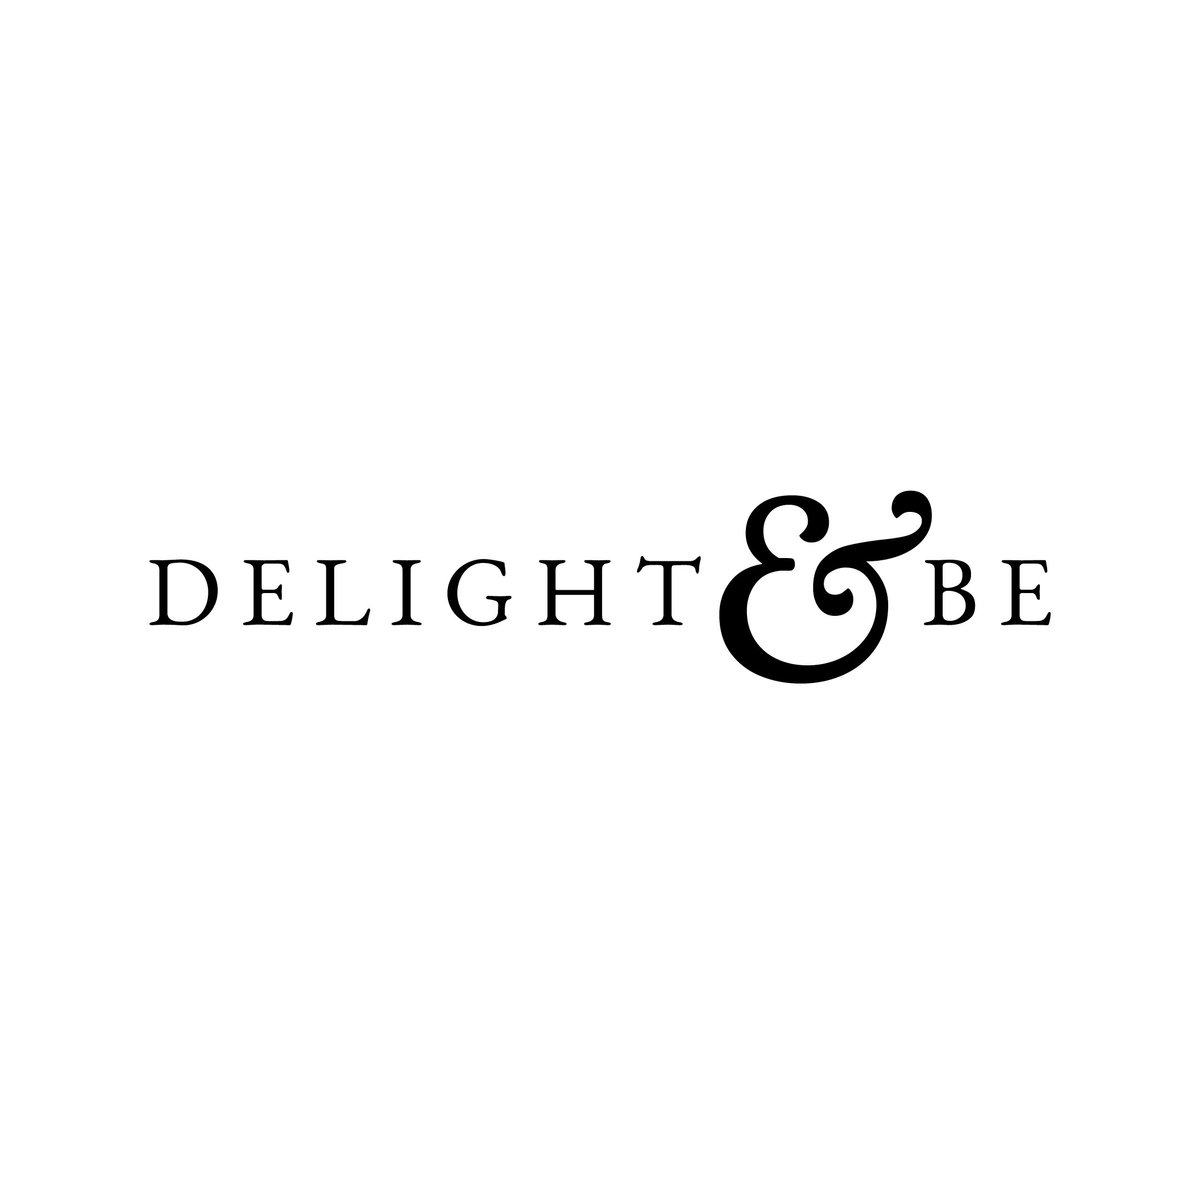 Delight & Be-01